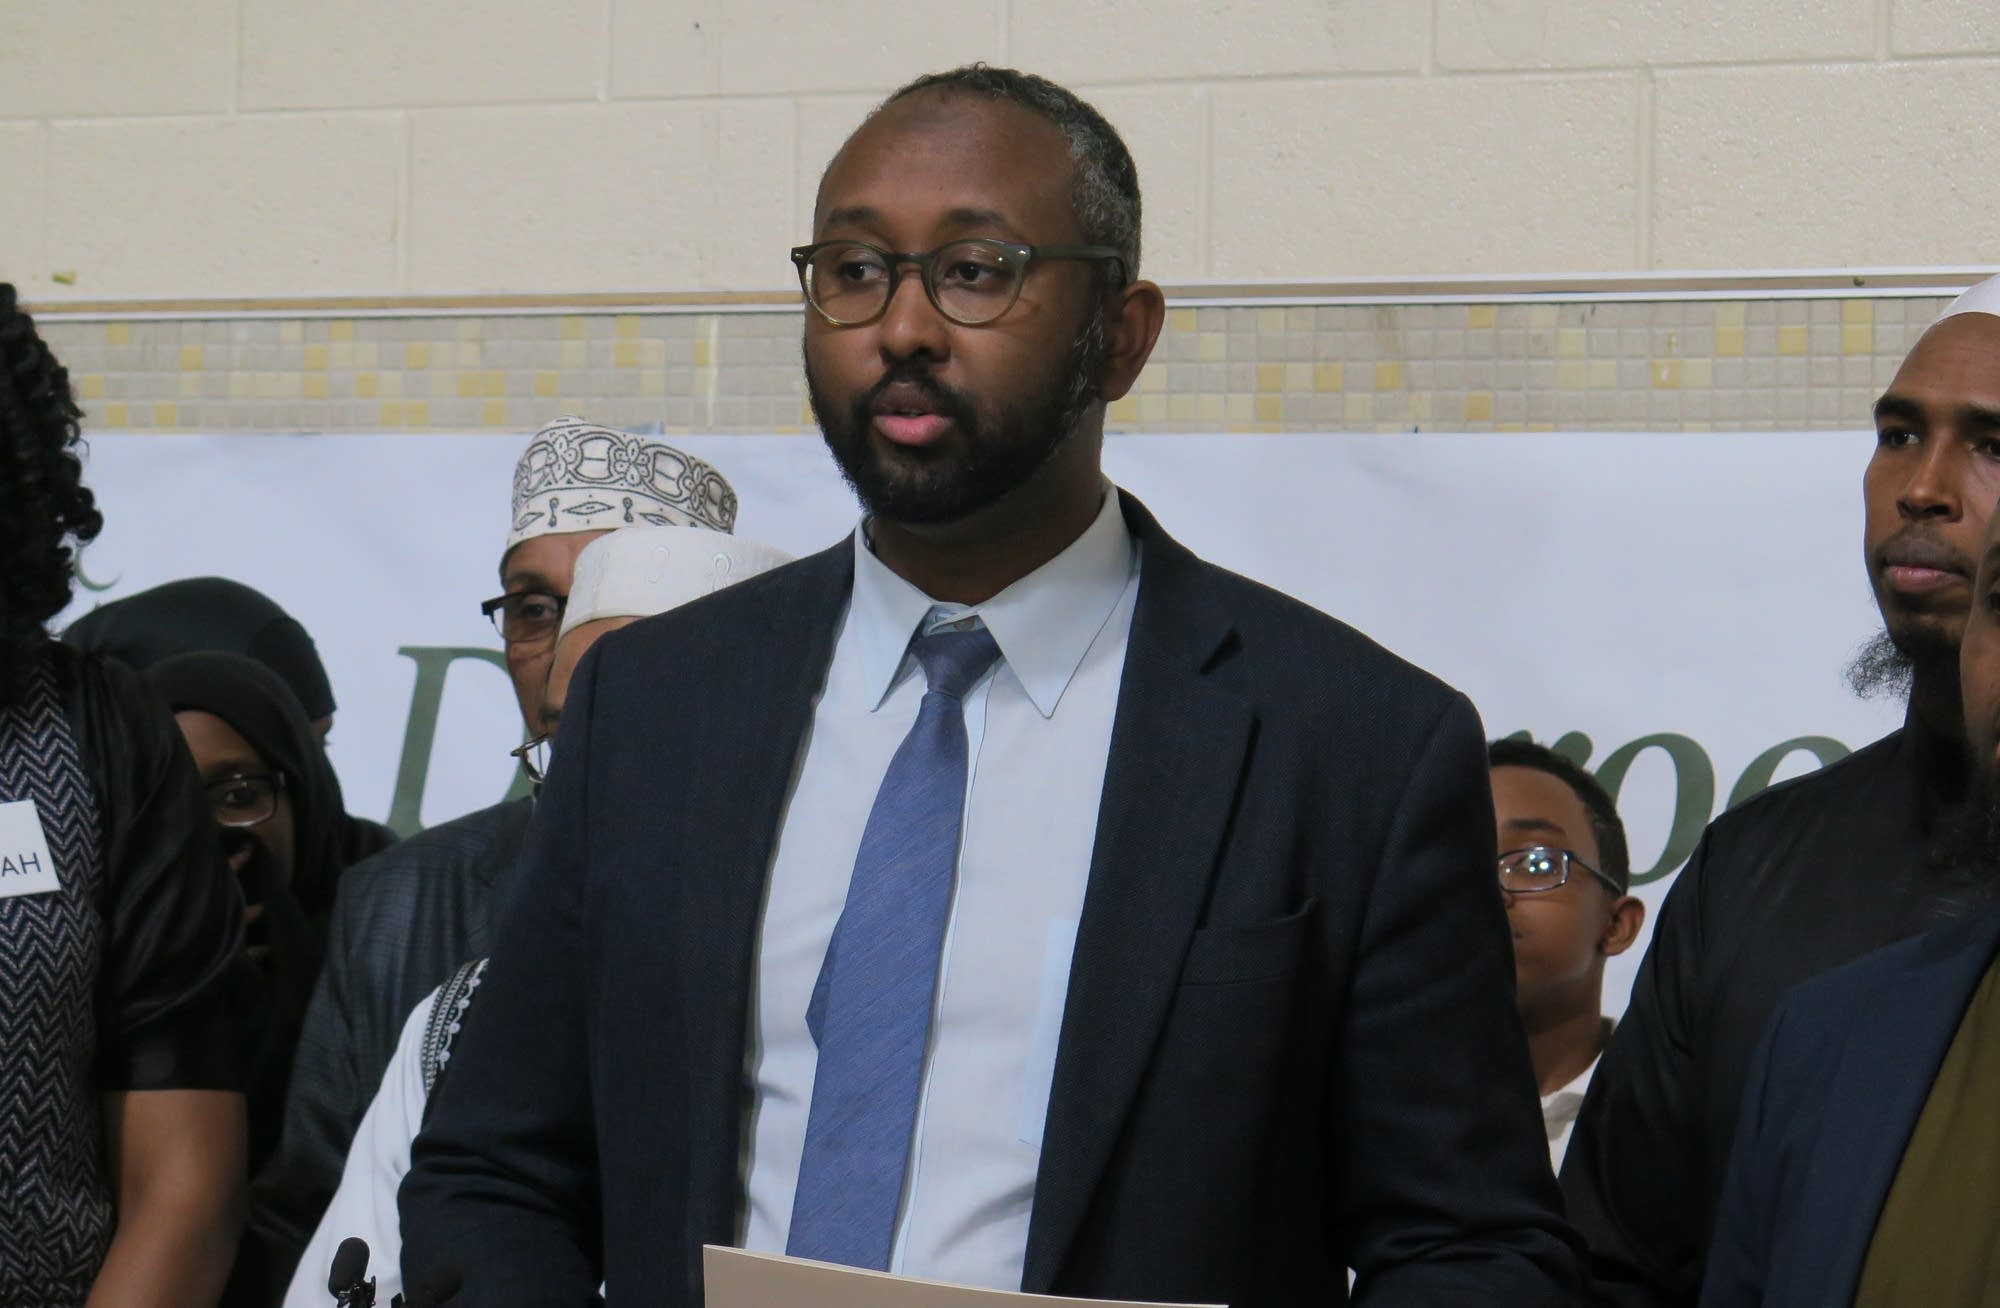 Jaylani Hussein speaks at a press conference